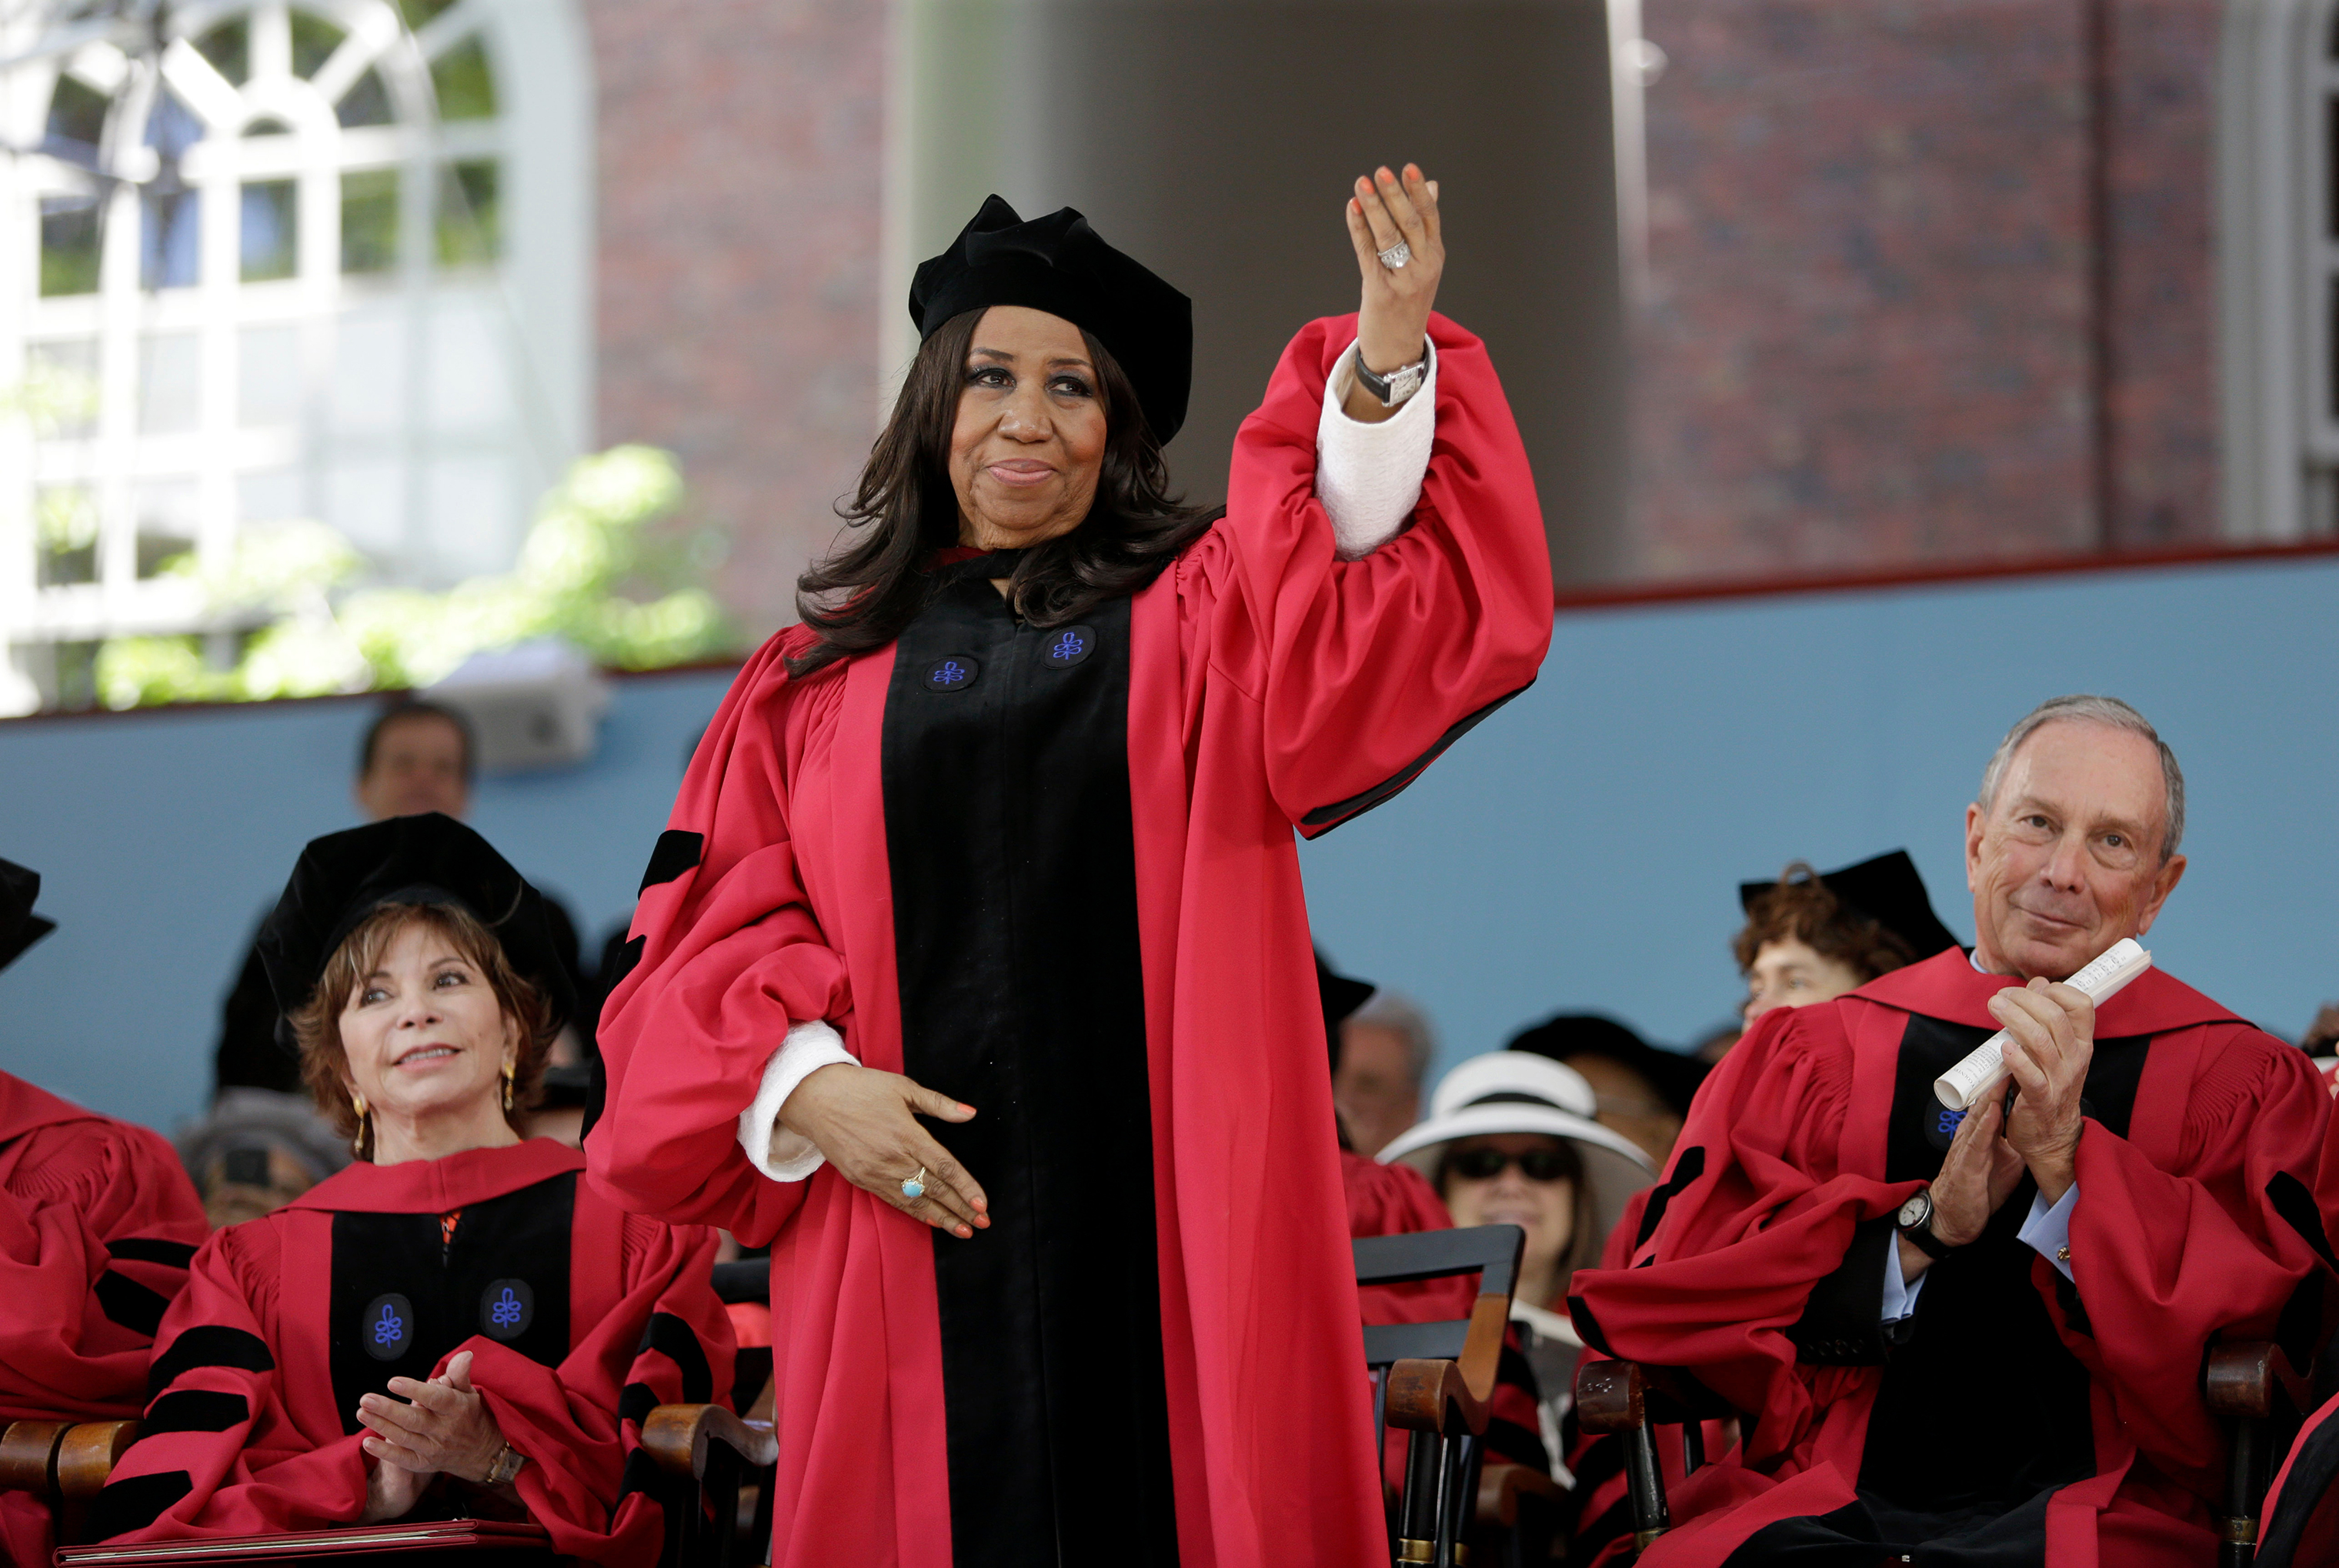 Aretha Franklin receives an honorary Doctor of Arts degree at the Harvard commencement ceremonies, in Cambridge, Mass. in May 2014.